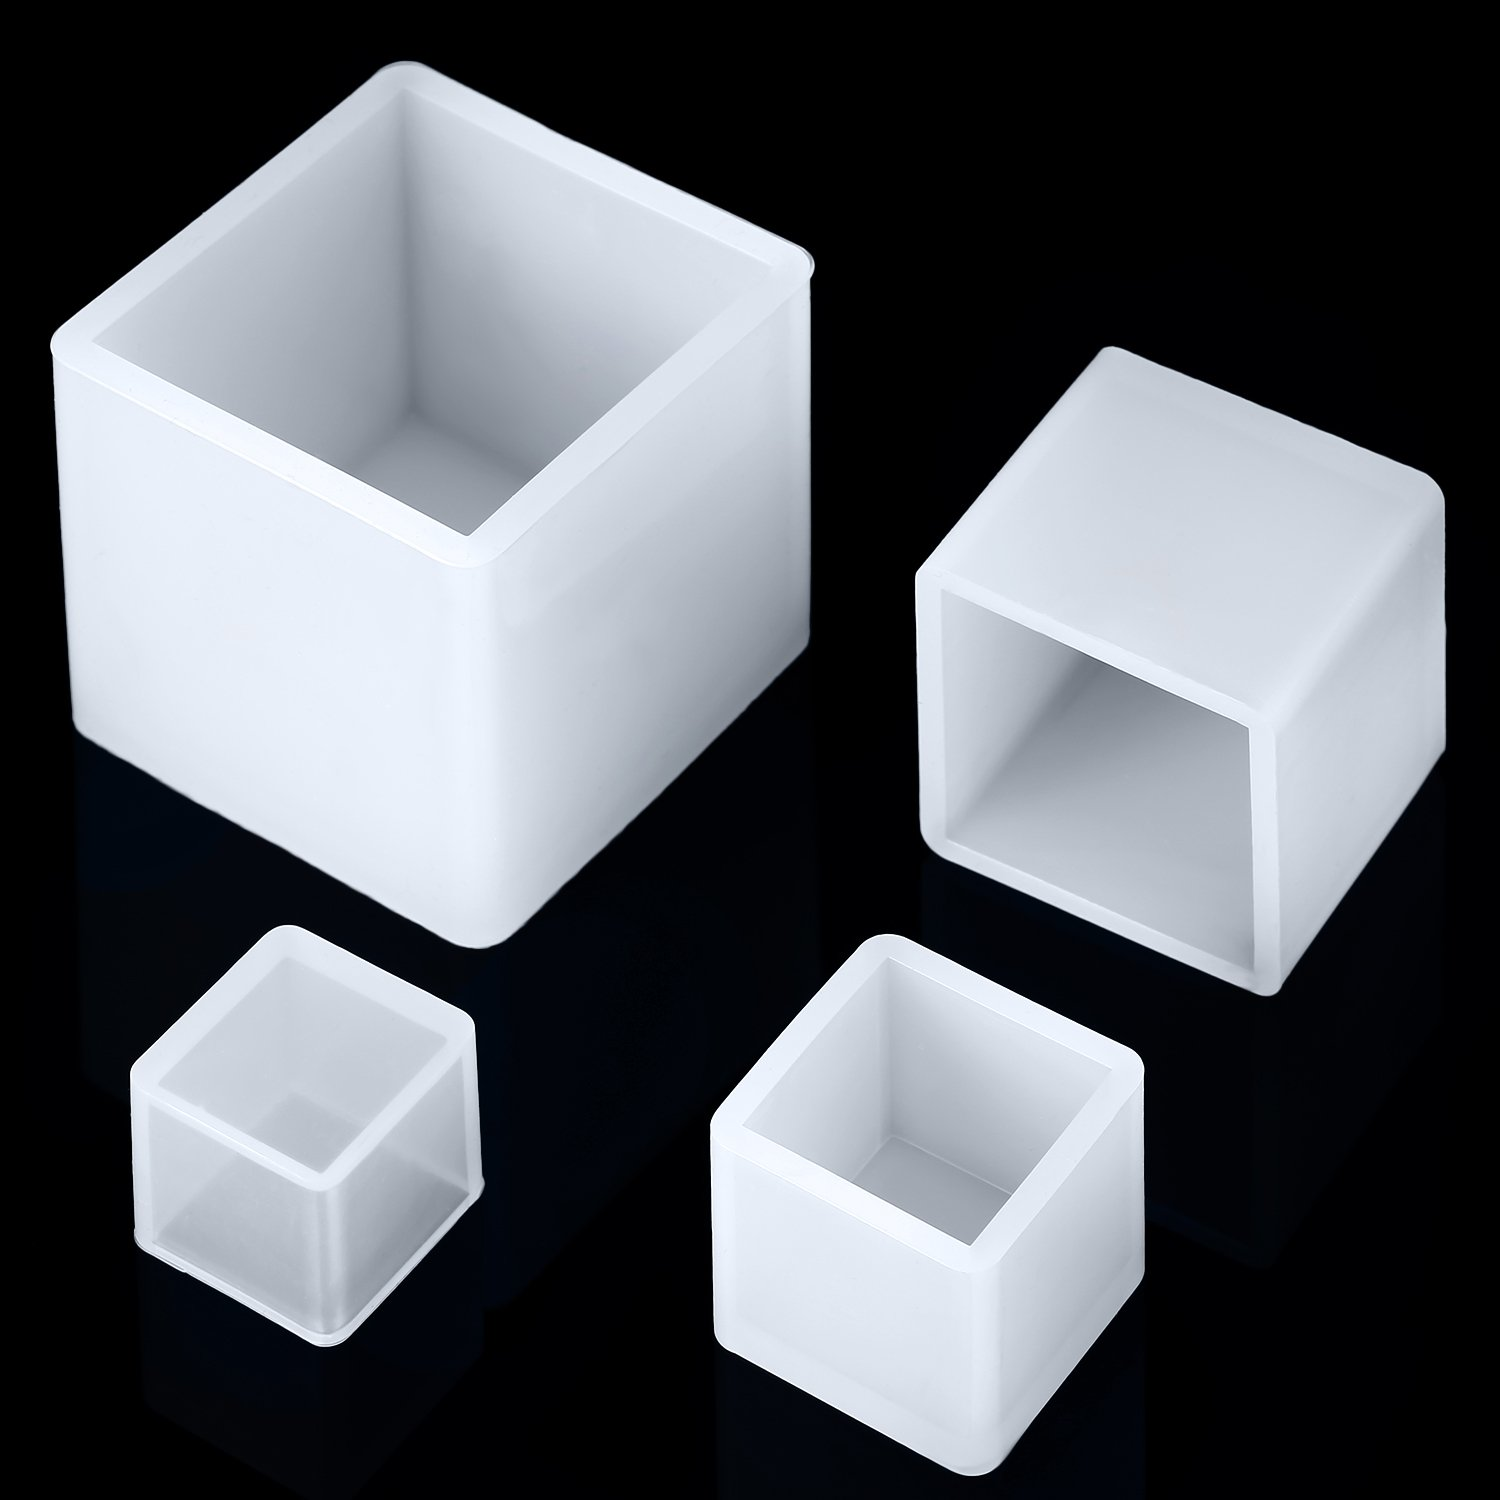 4 Pieces Square Resin Mold Cube Silicone Molds Resin Casting Molds for DIY Craft Making, 4 Sizes Jovitec